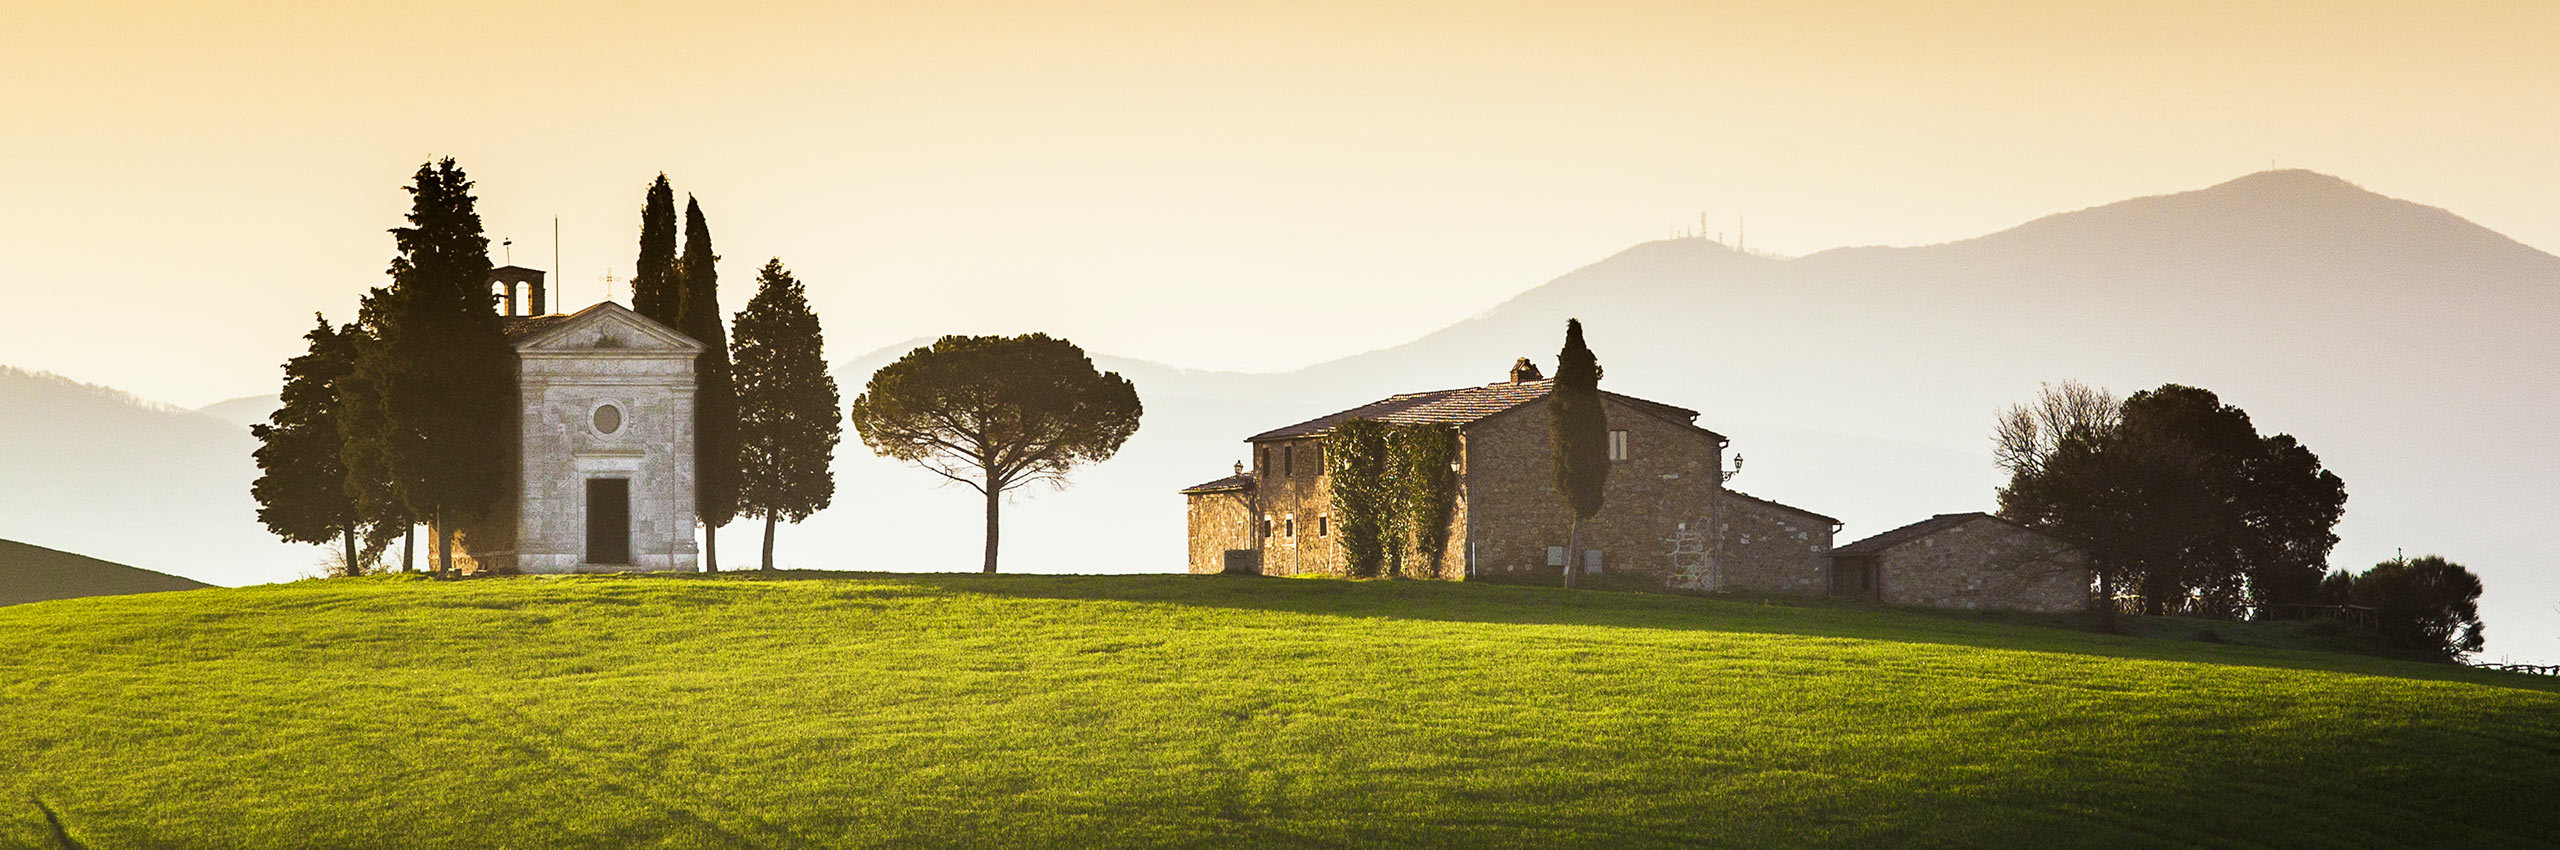 SIM-503261 | Italy/Tuscany, Siena district, Orcia Valley, San Quirico d'Orcia | © Lorenz Berna/4Corners